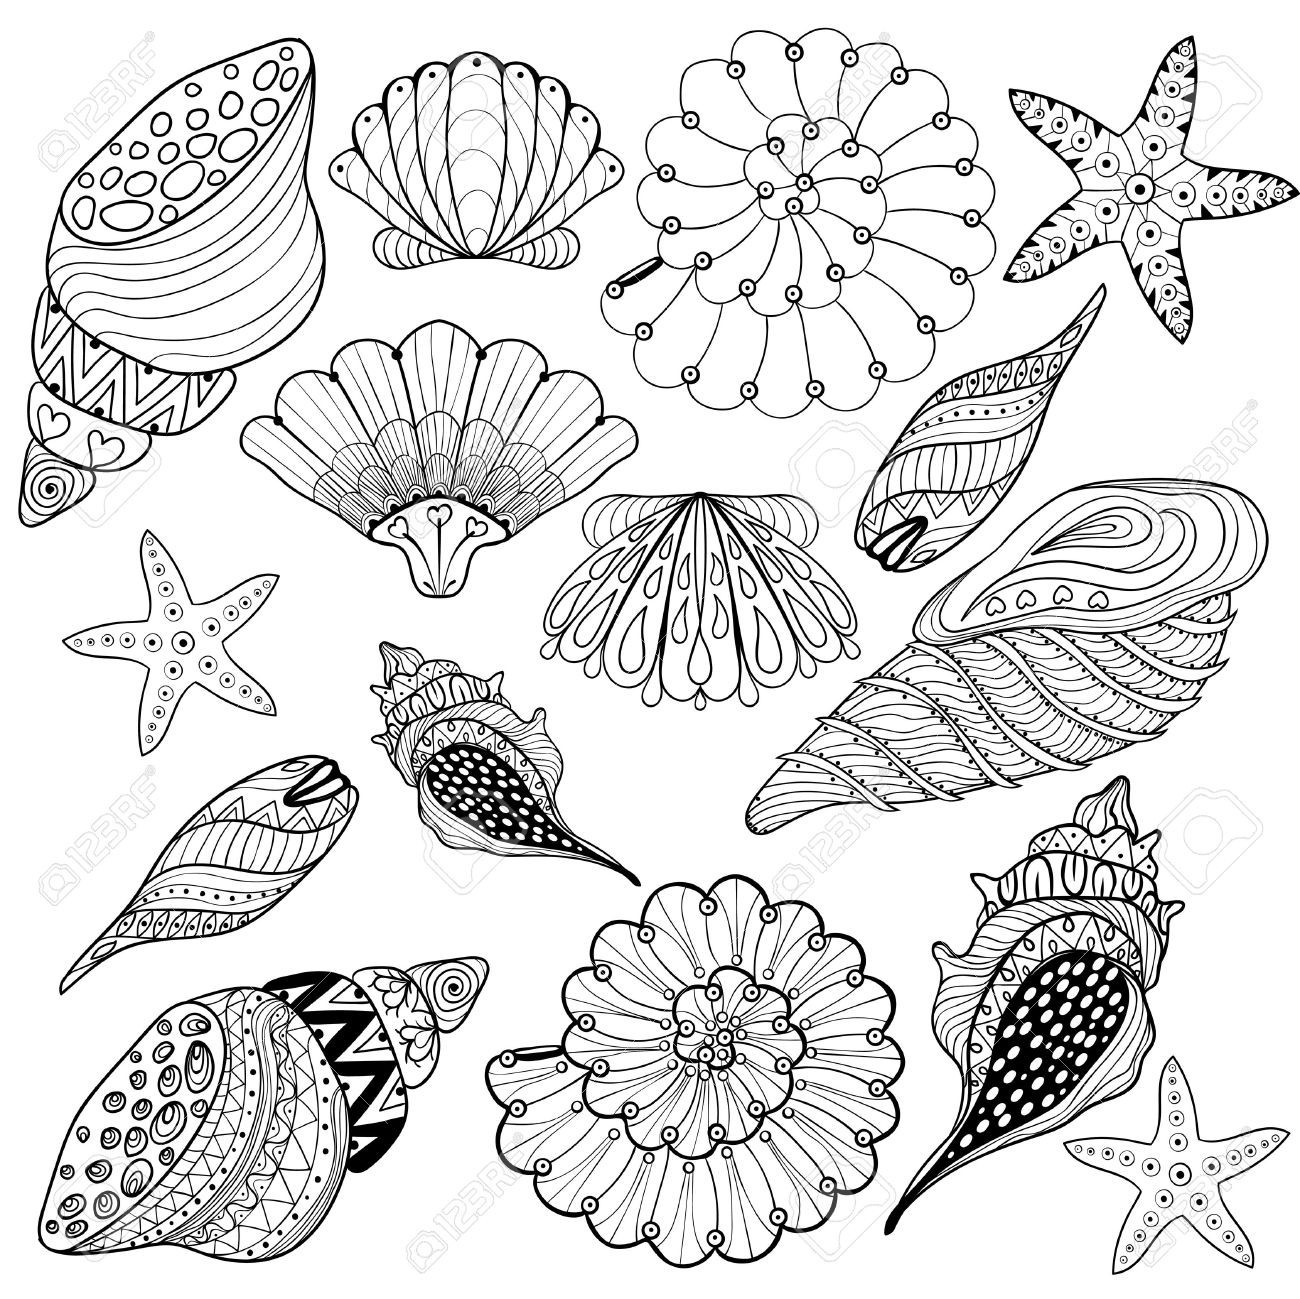 Zentangle Coloring Pages  Printable 1d - Free Download